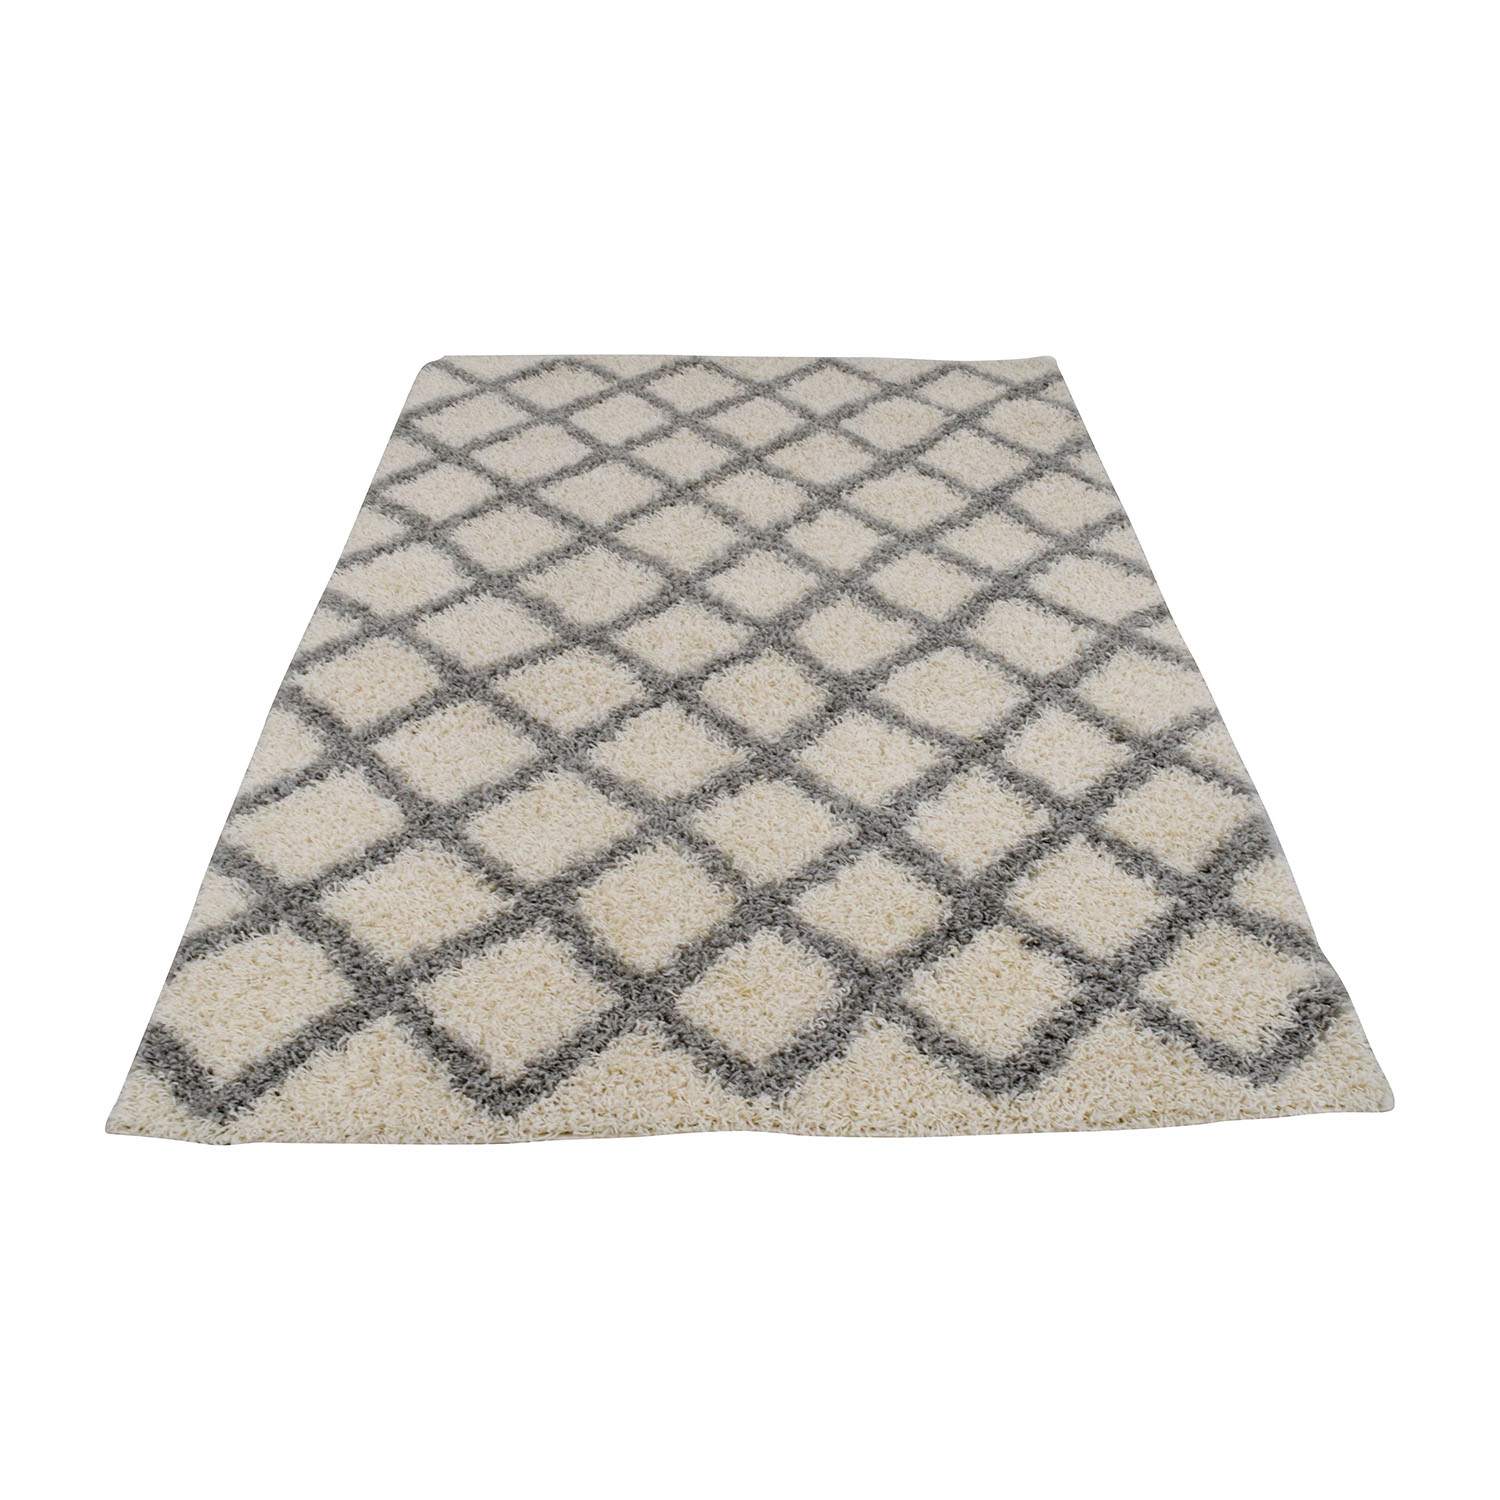 Safavieh Safavieh Dallas Shag Ivory and Grey Trellis Rug on sale